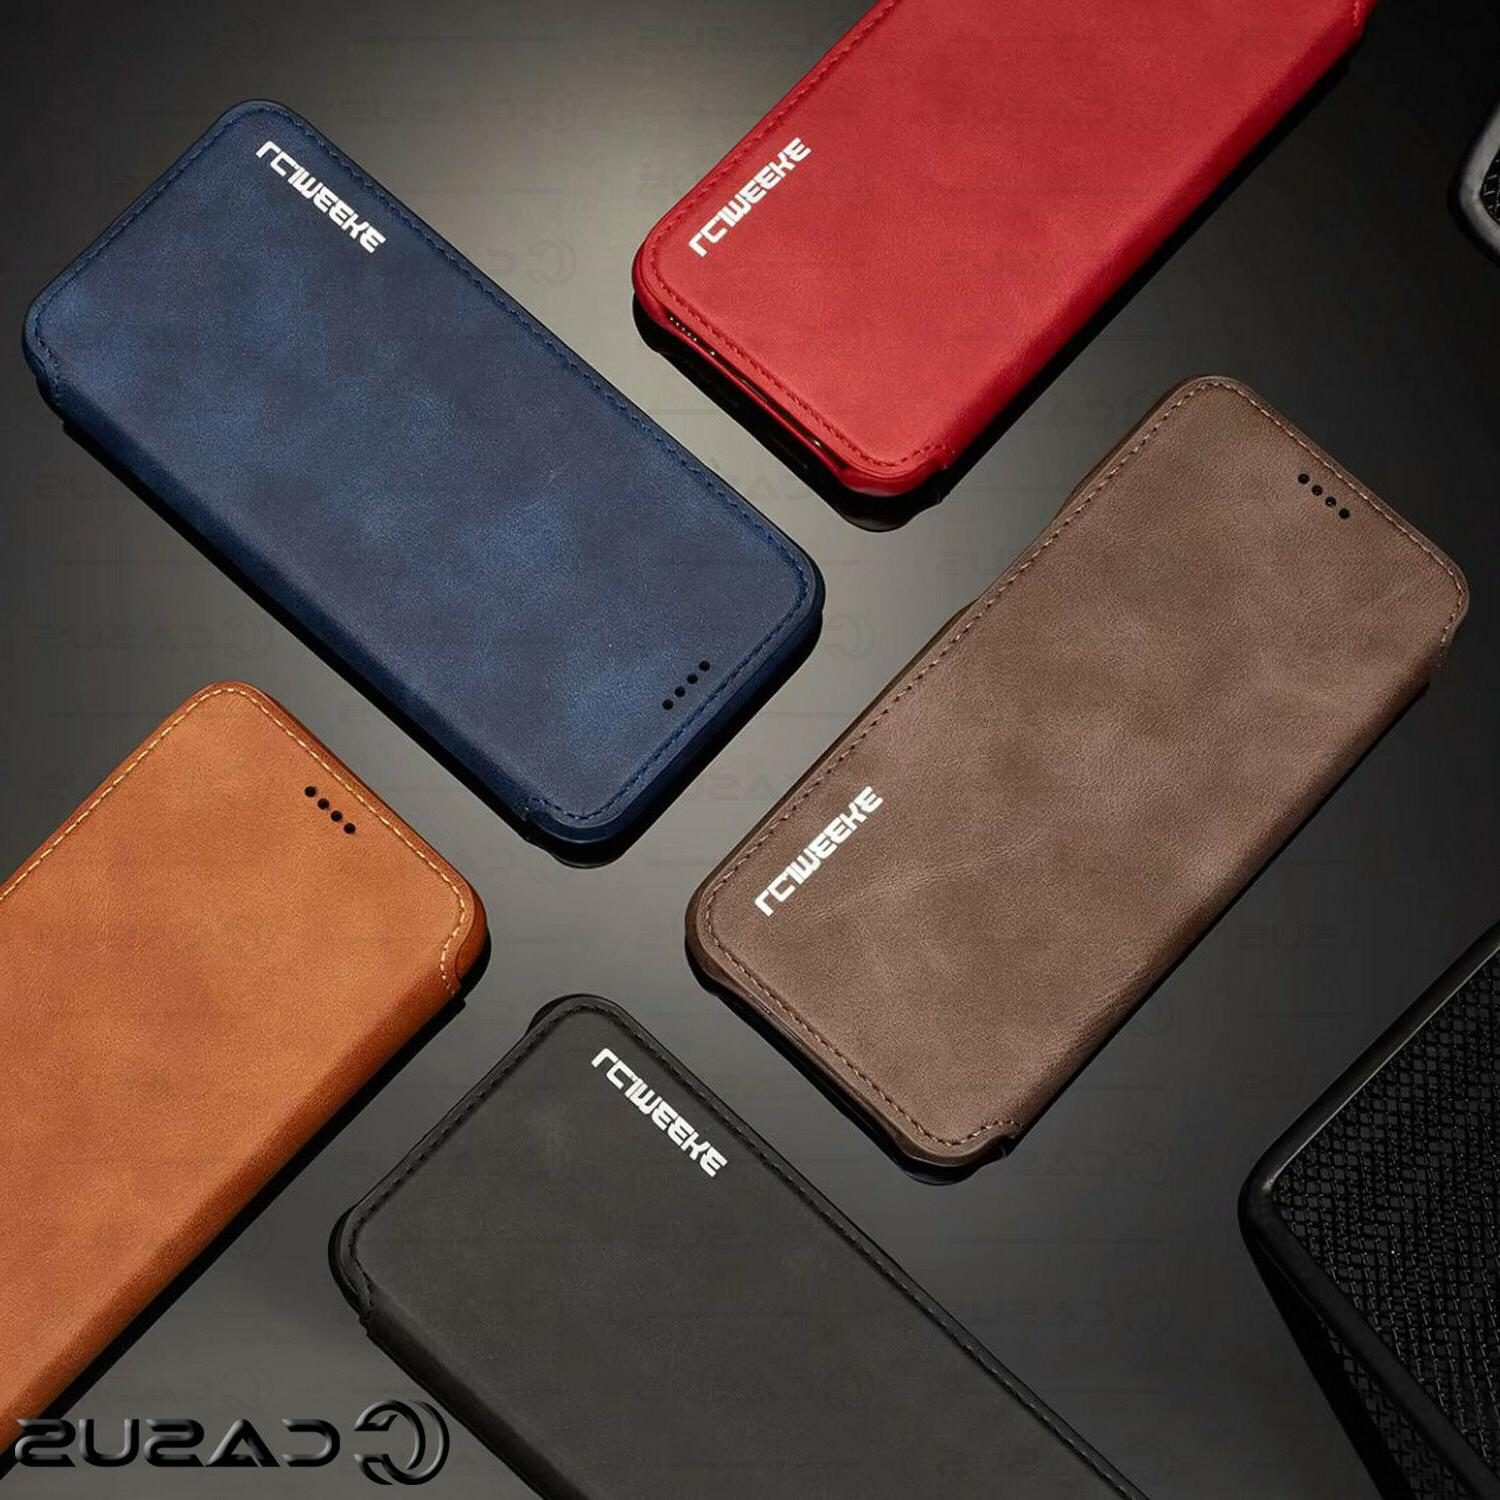 For Ultra S20/S10/S9 Leather Wallet Slim Cover